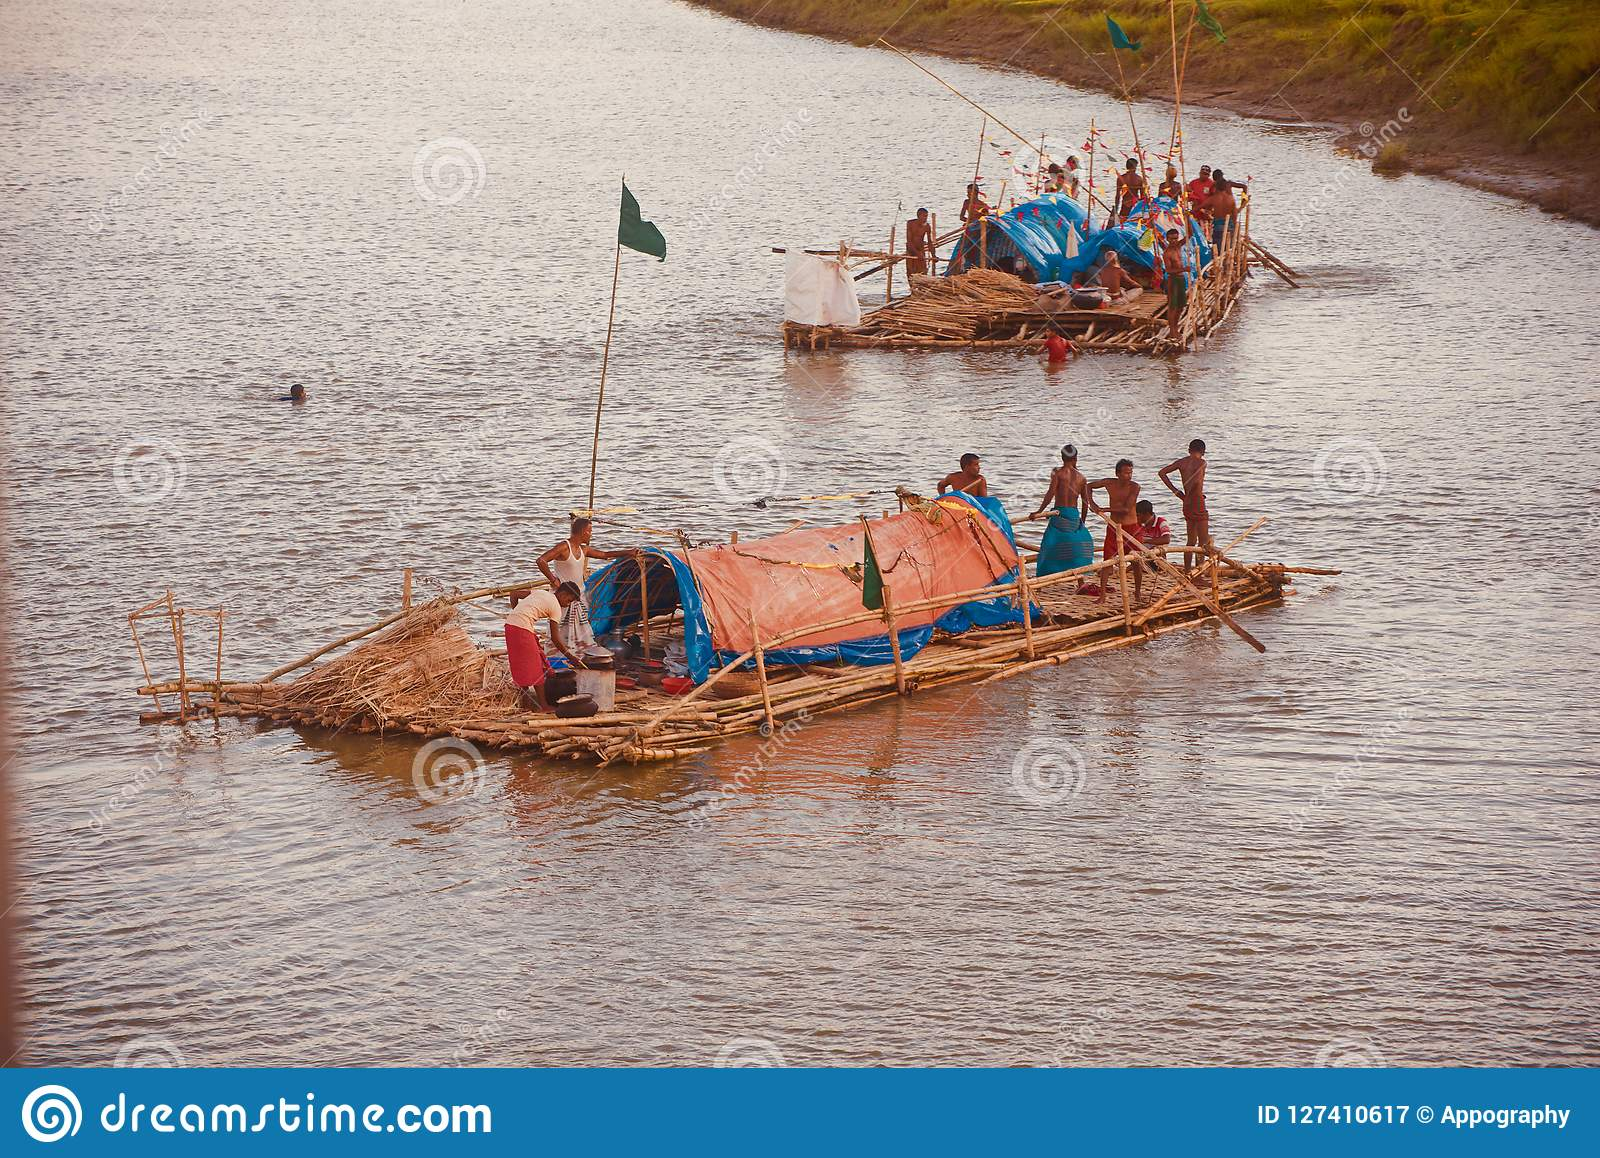 People travelling on a traditional boat in the river unique photo